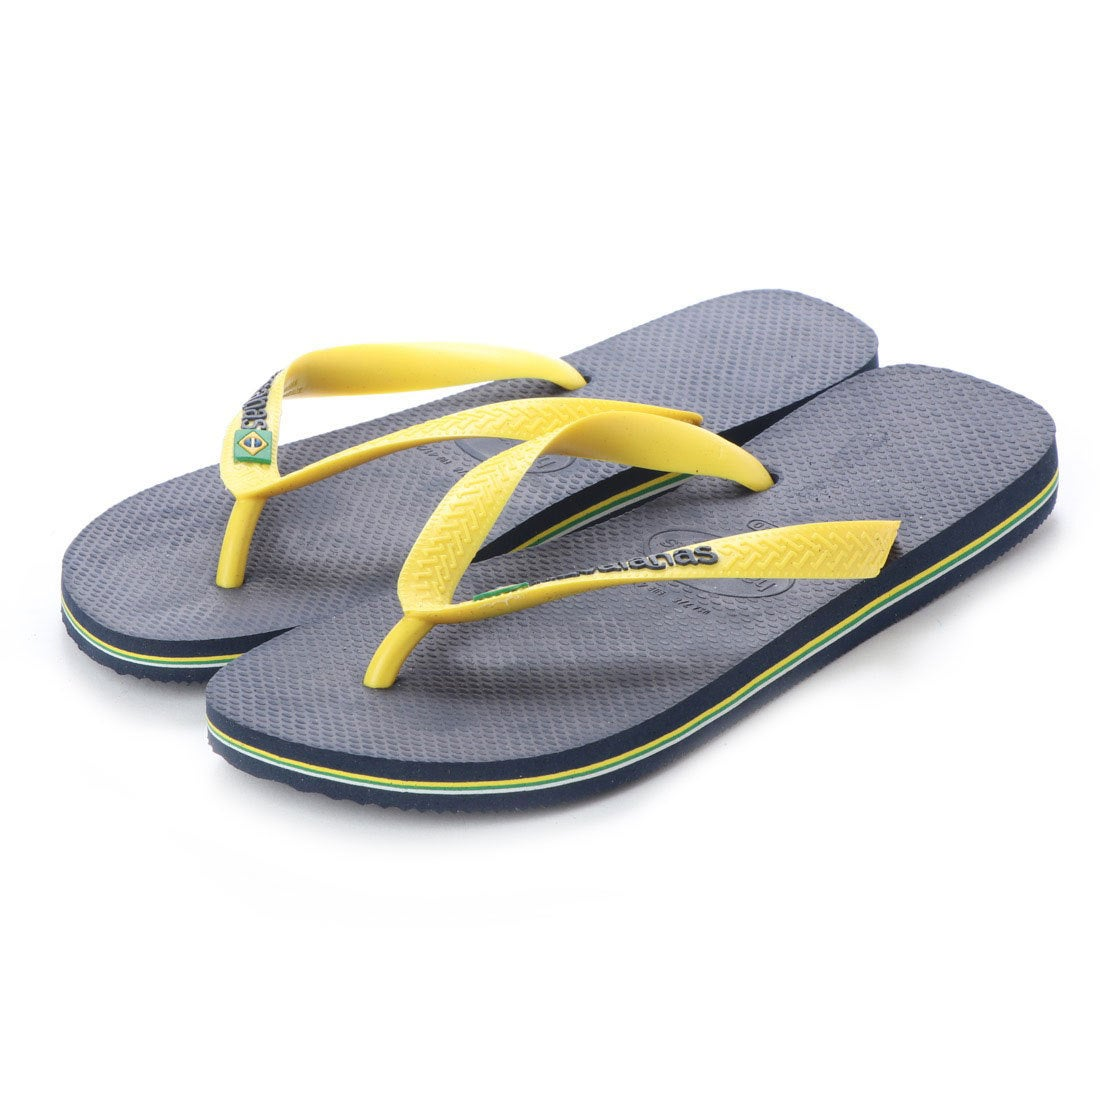 ハワイアナス havaianas BRASIL LOGO (kids sizes) (navy blue/citrus yellow)